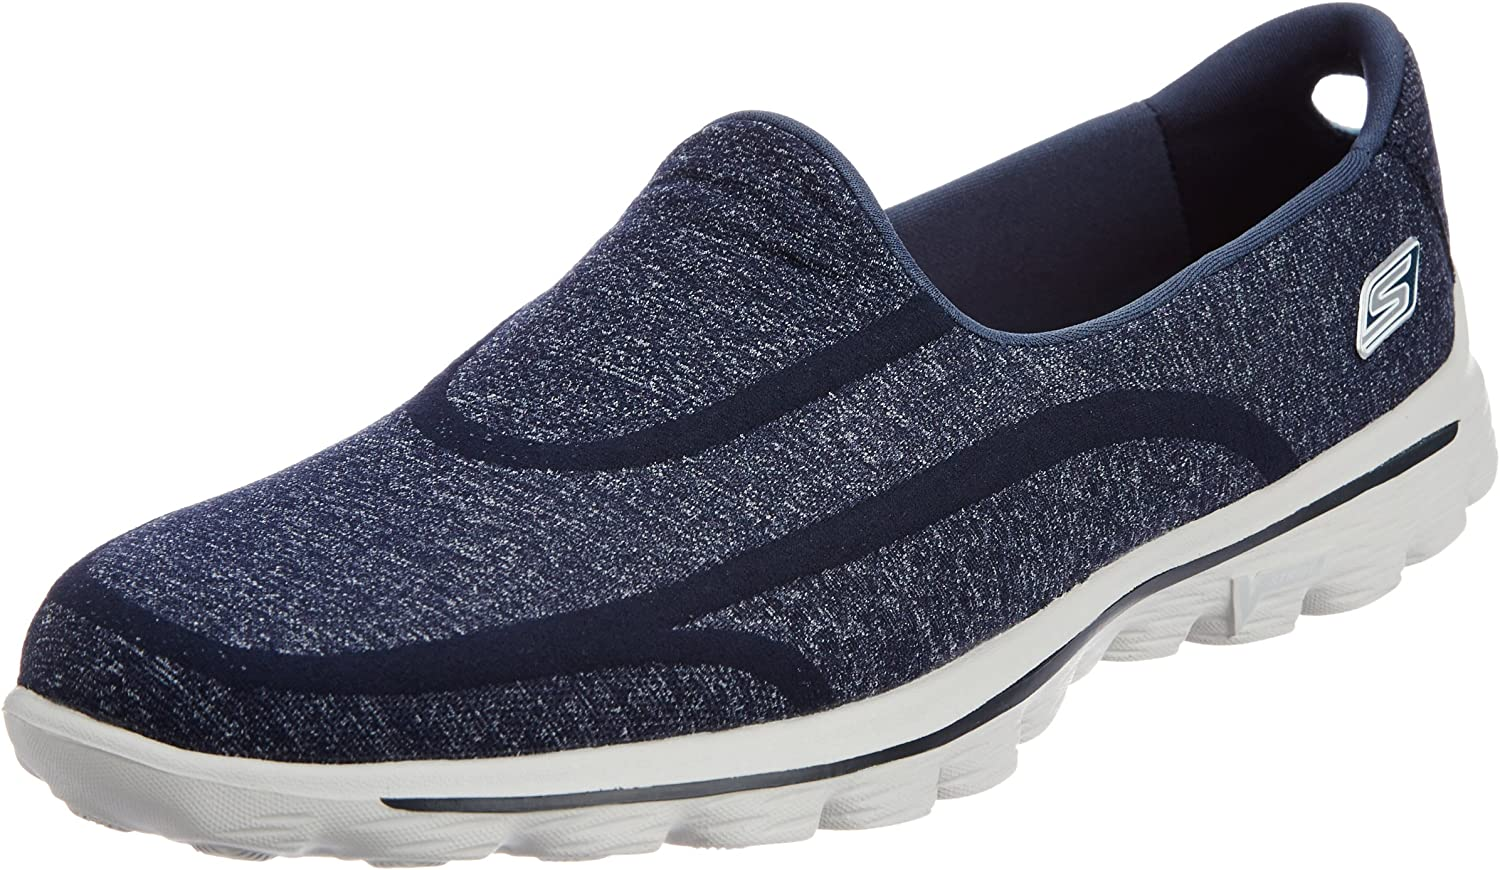 Skechers Women's Go Walk 2 Super Sock Walking shoes